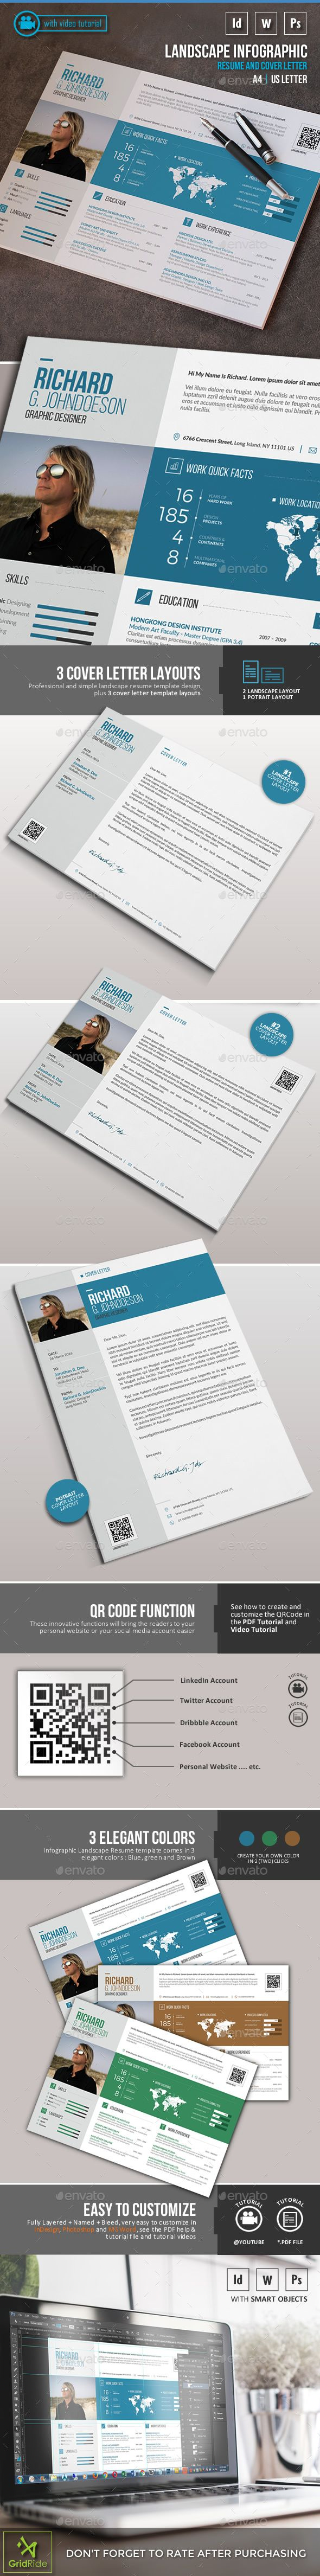 Landscape Infographic Resume — Photoshop PSD #cv #msword resume • Available here → https://graphicriver.net/item/landscape-infographic-resume/16135251?ref=pxcr